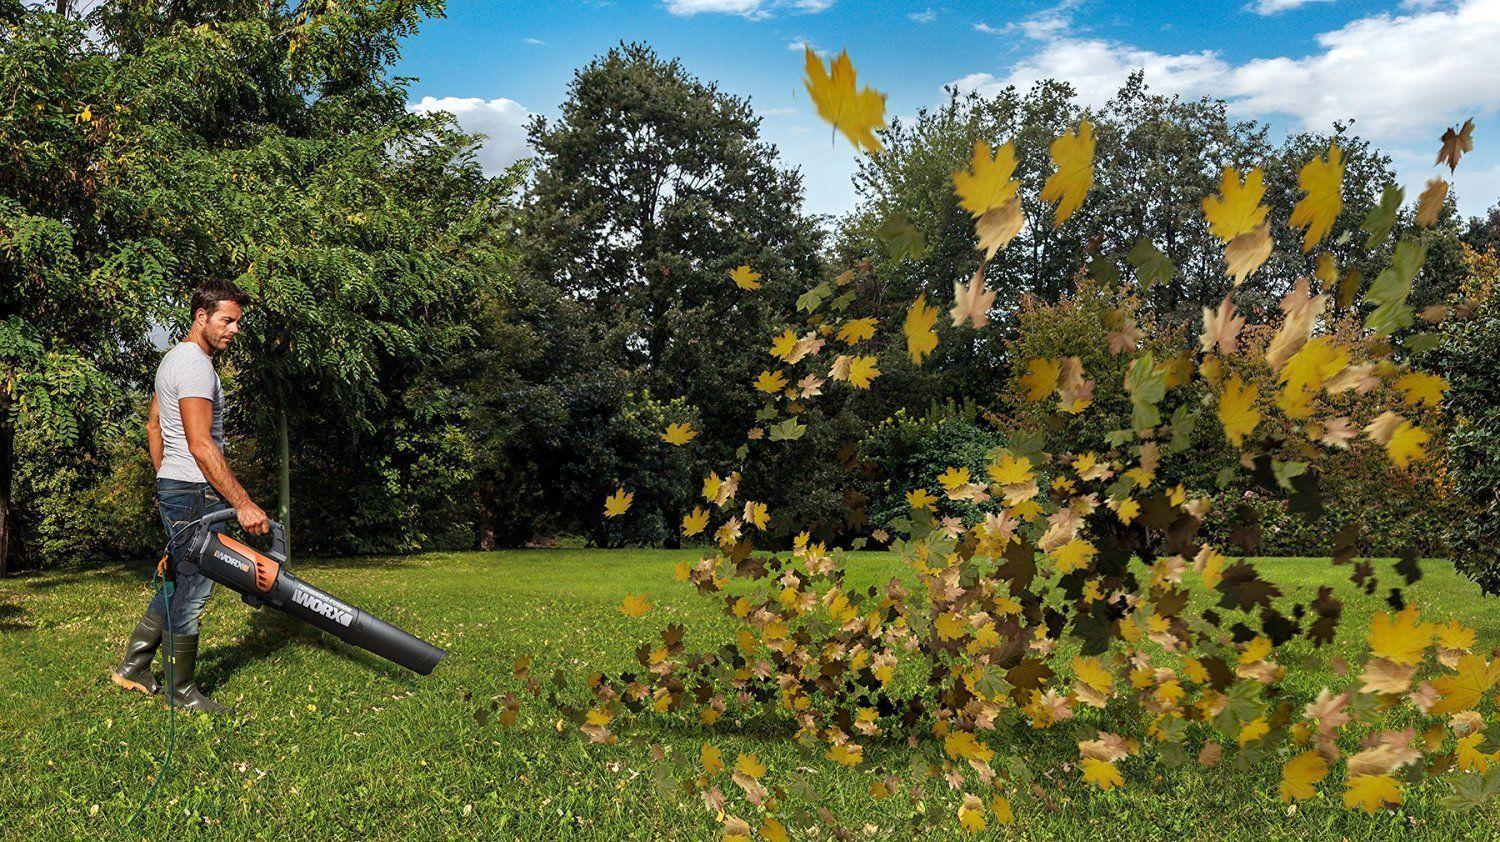 Worx Turbine 12 Amp Corded Leaf Blower WG520 Review